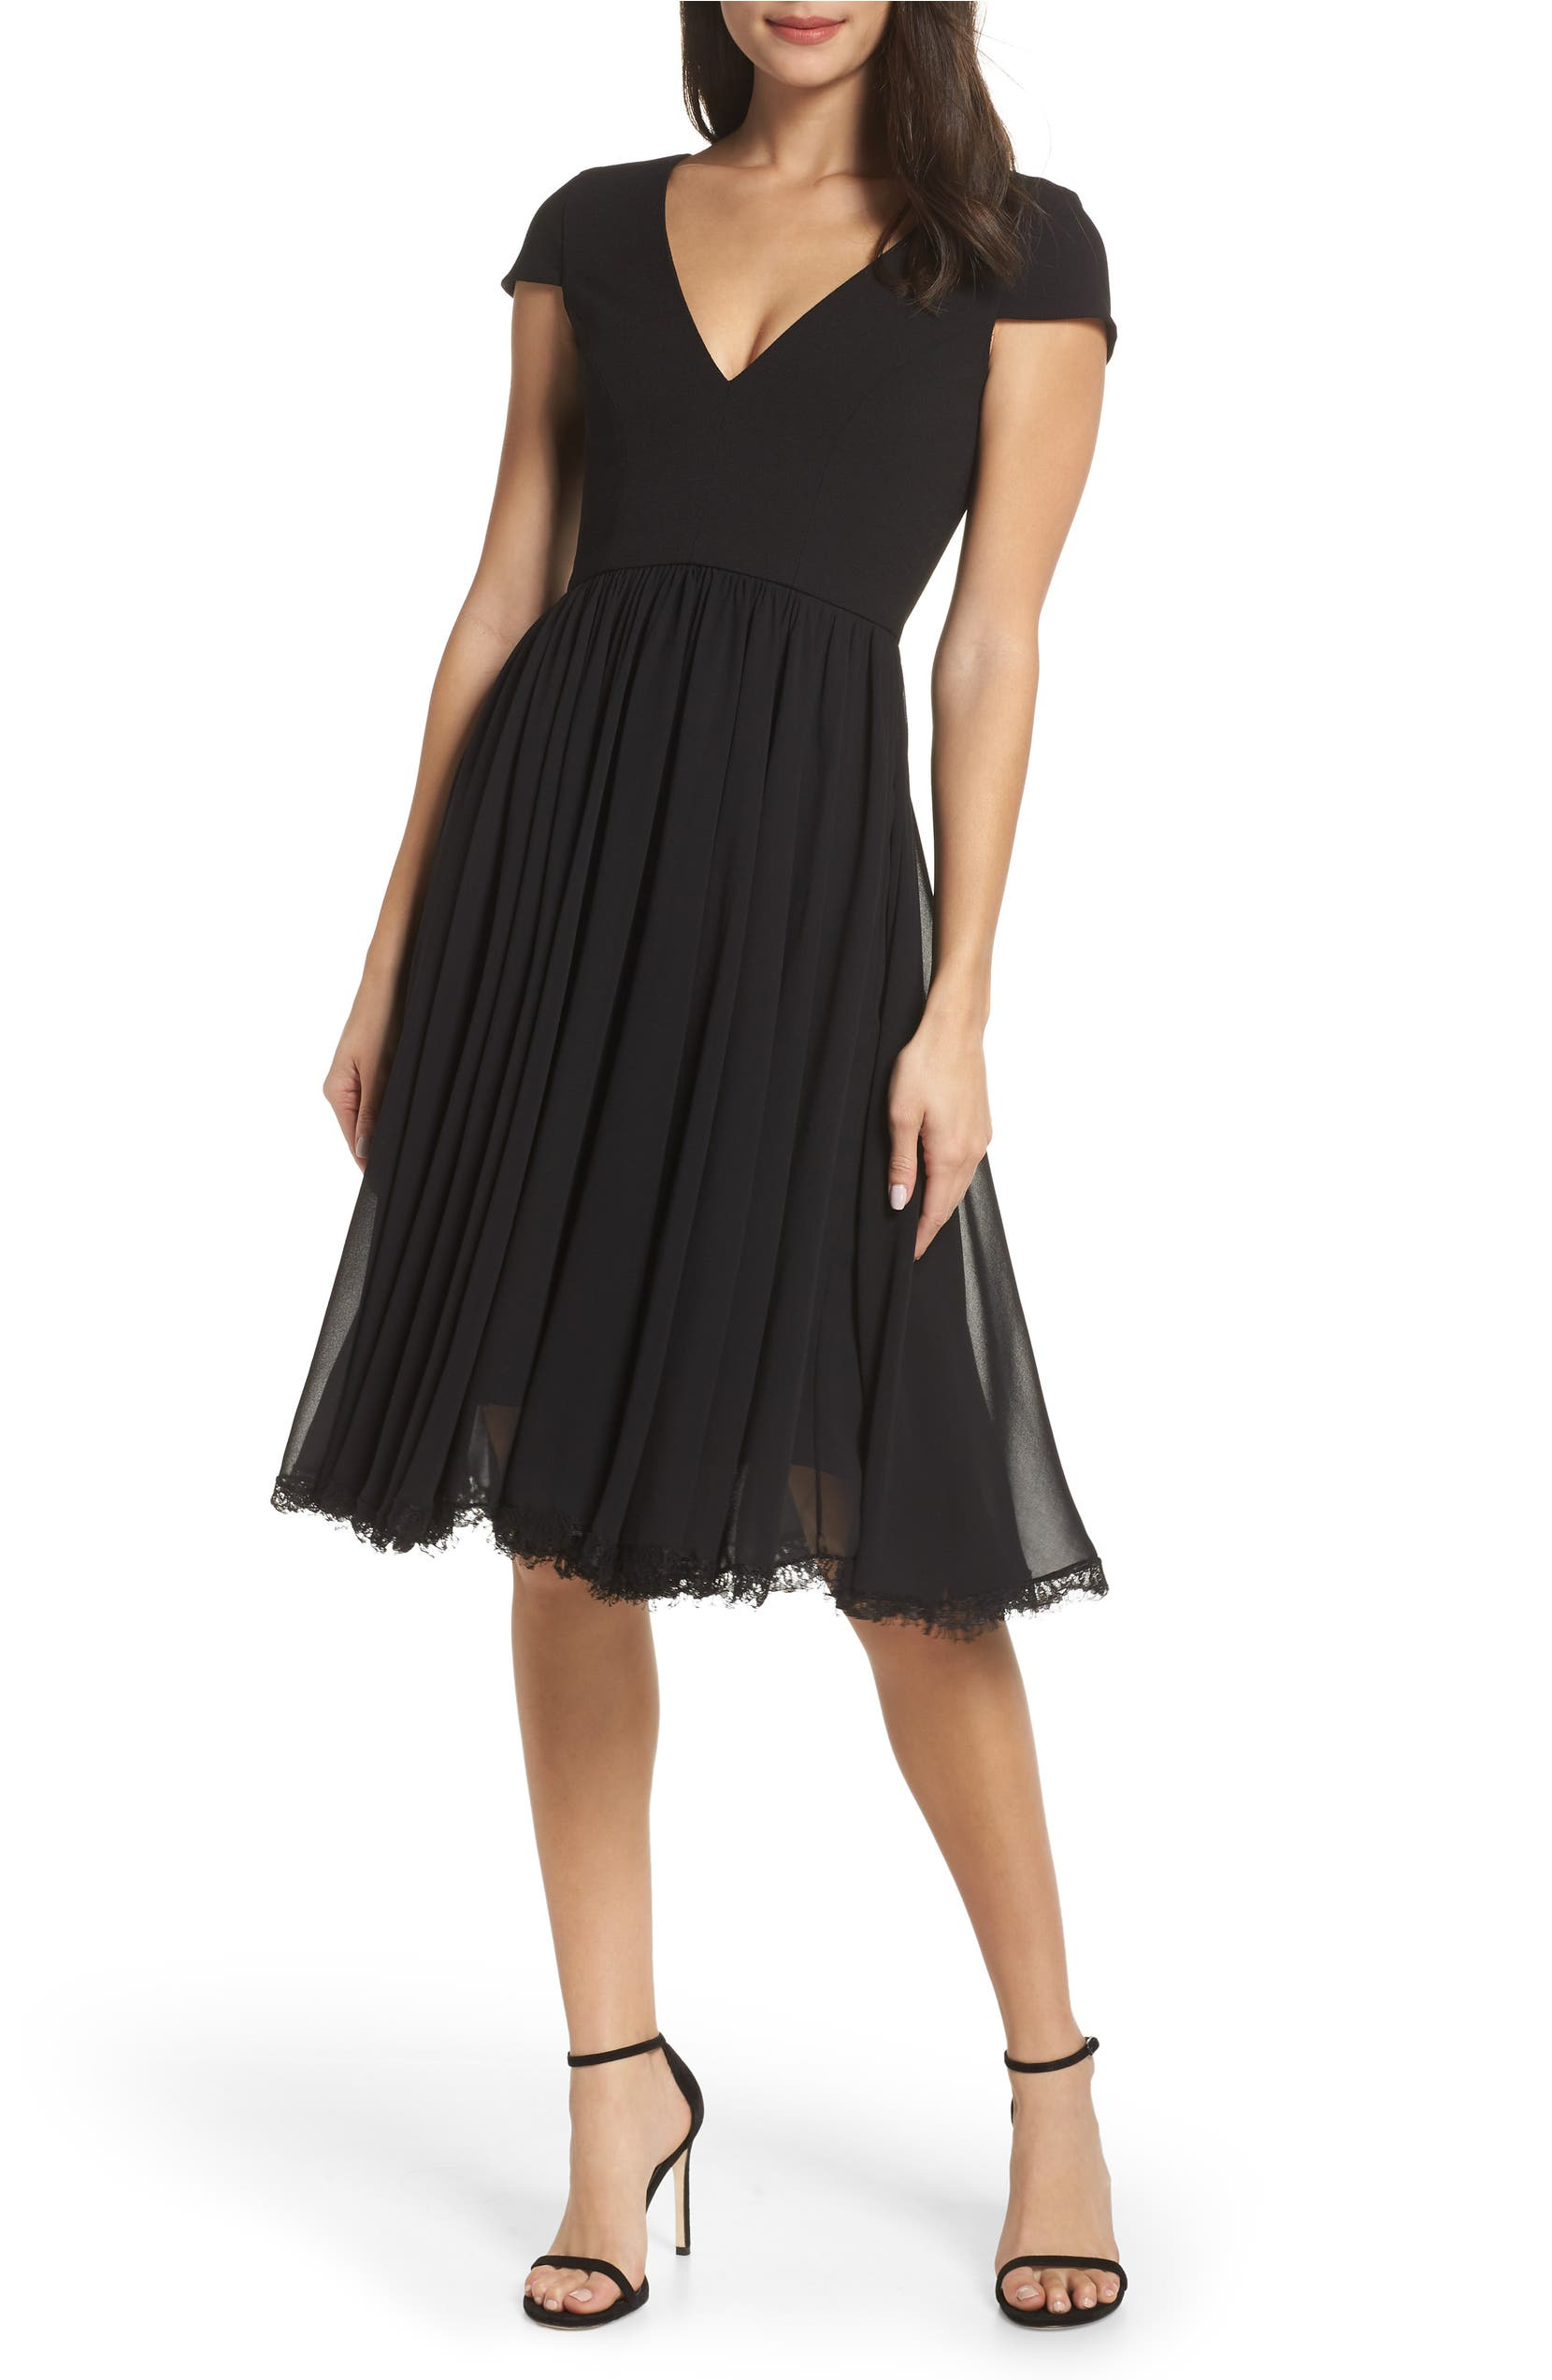 4b291fc73bd Dress The Potion Corey Chiffon Fit Flare Nordstrom. Nbd Fiona Strappy  Halter Dress At Nordstrom Rack Womens Casual Dresses